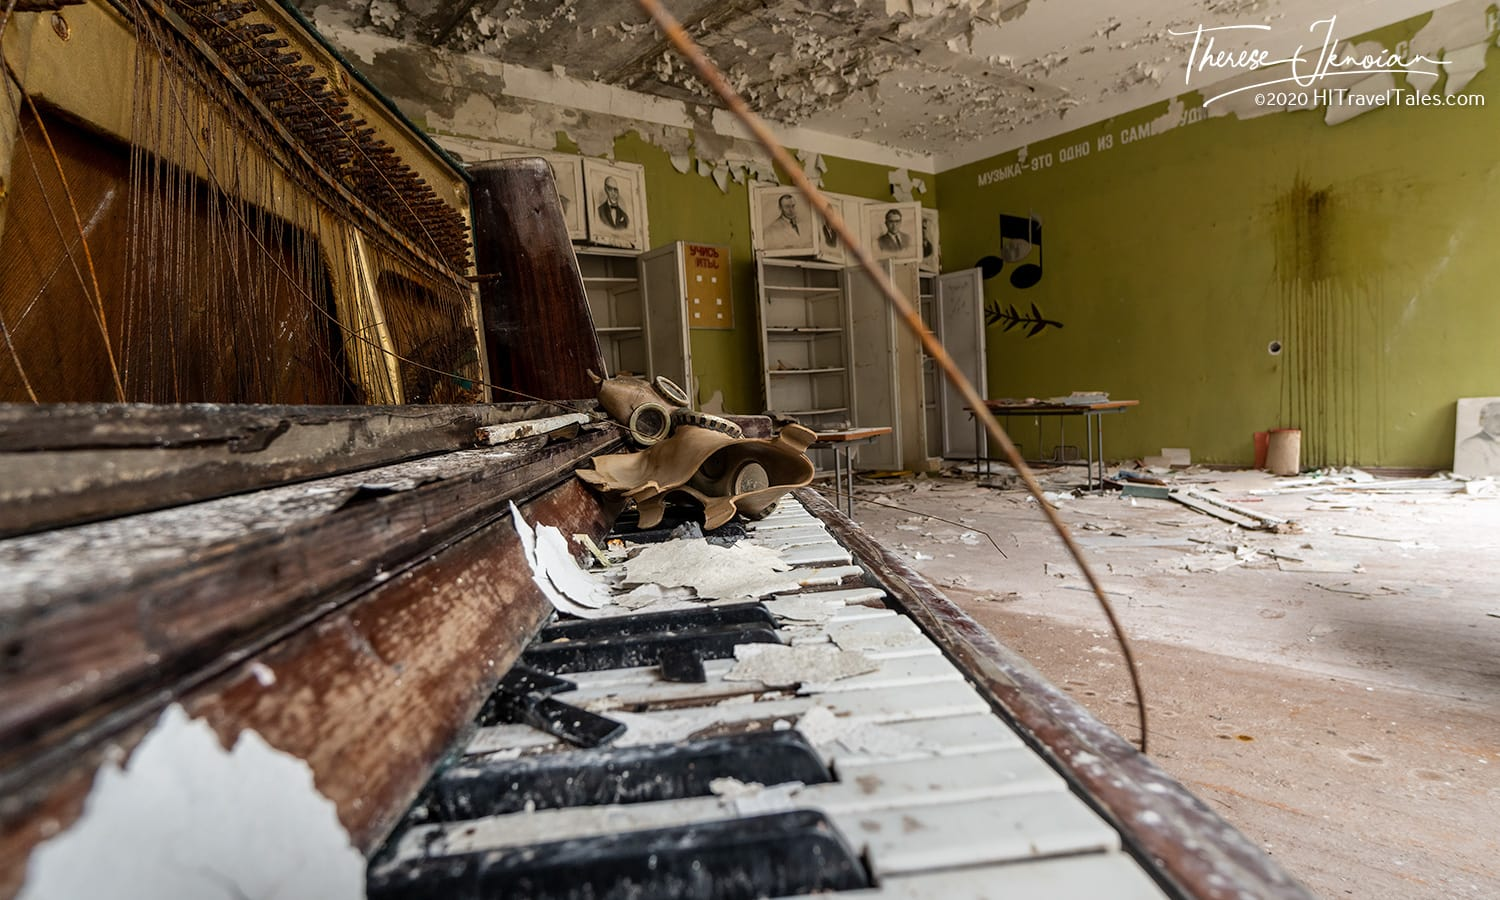 A school's music room with a gas mask on a crumbling piano. The gas masks found here and there when visiting Chernobyl today are more than likely placed by tourists for photo ops or by unethical guides.